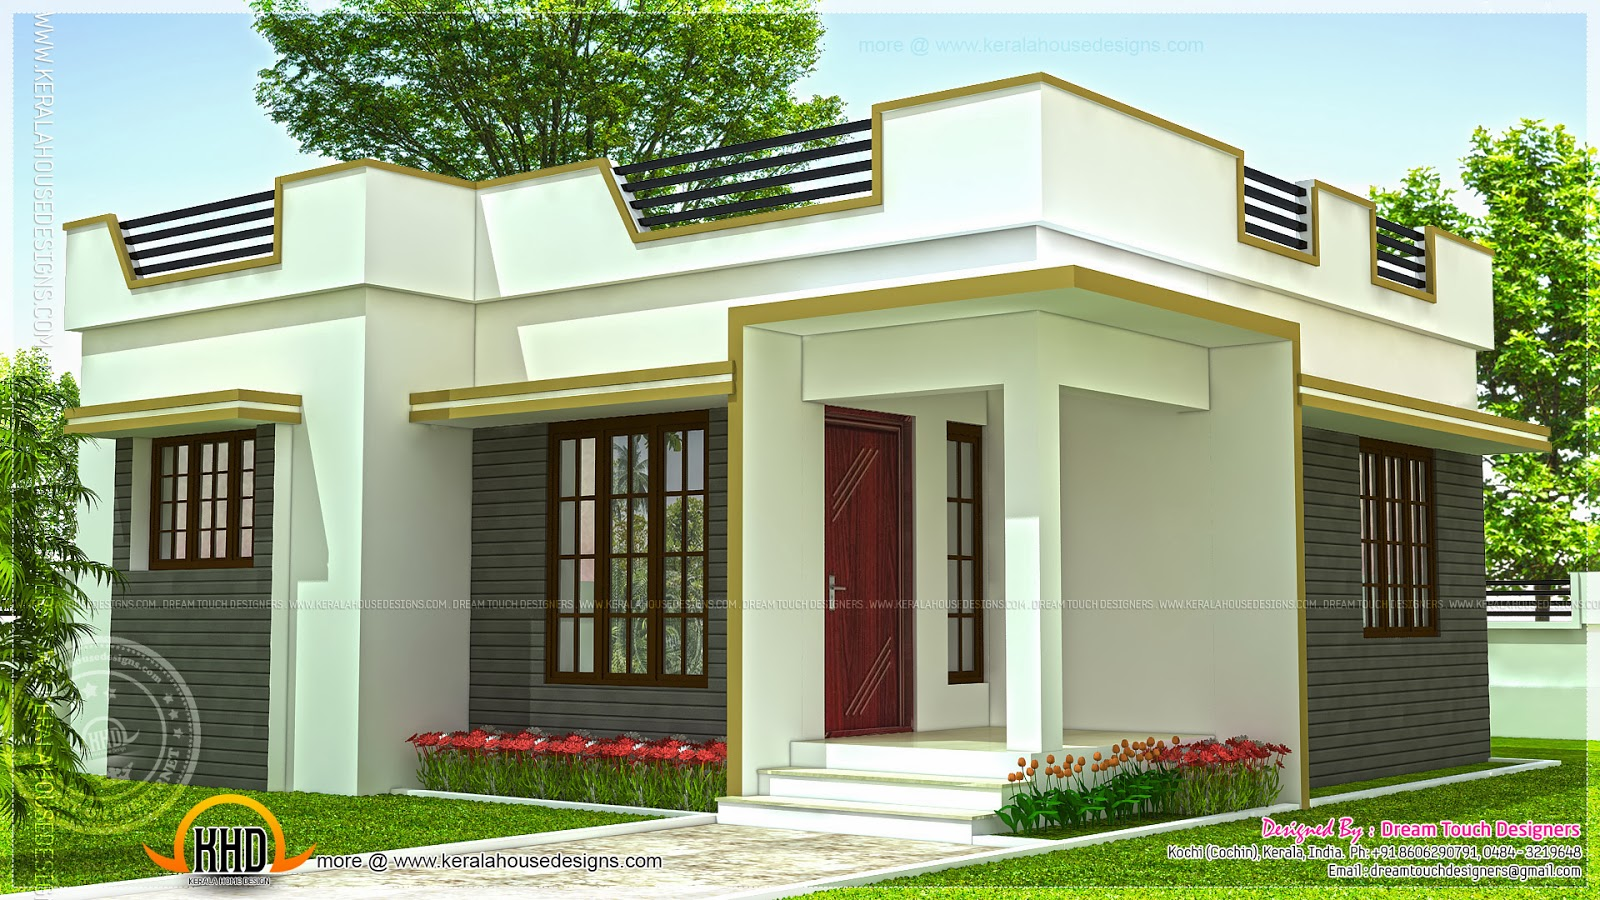 35 small and simple but beautiful house with roof deck for Simple beautiful house